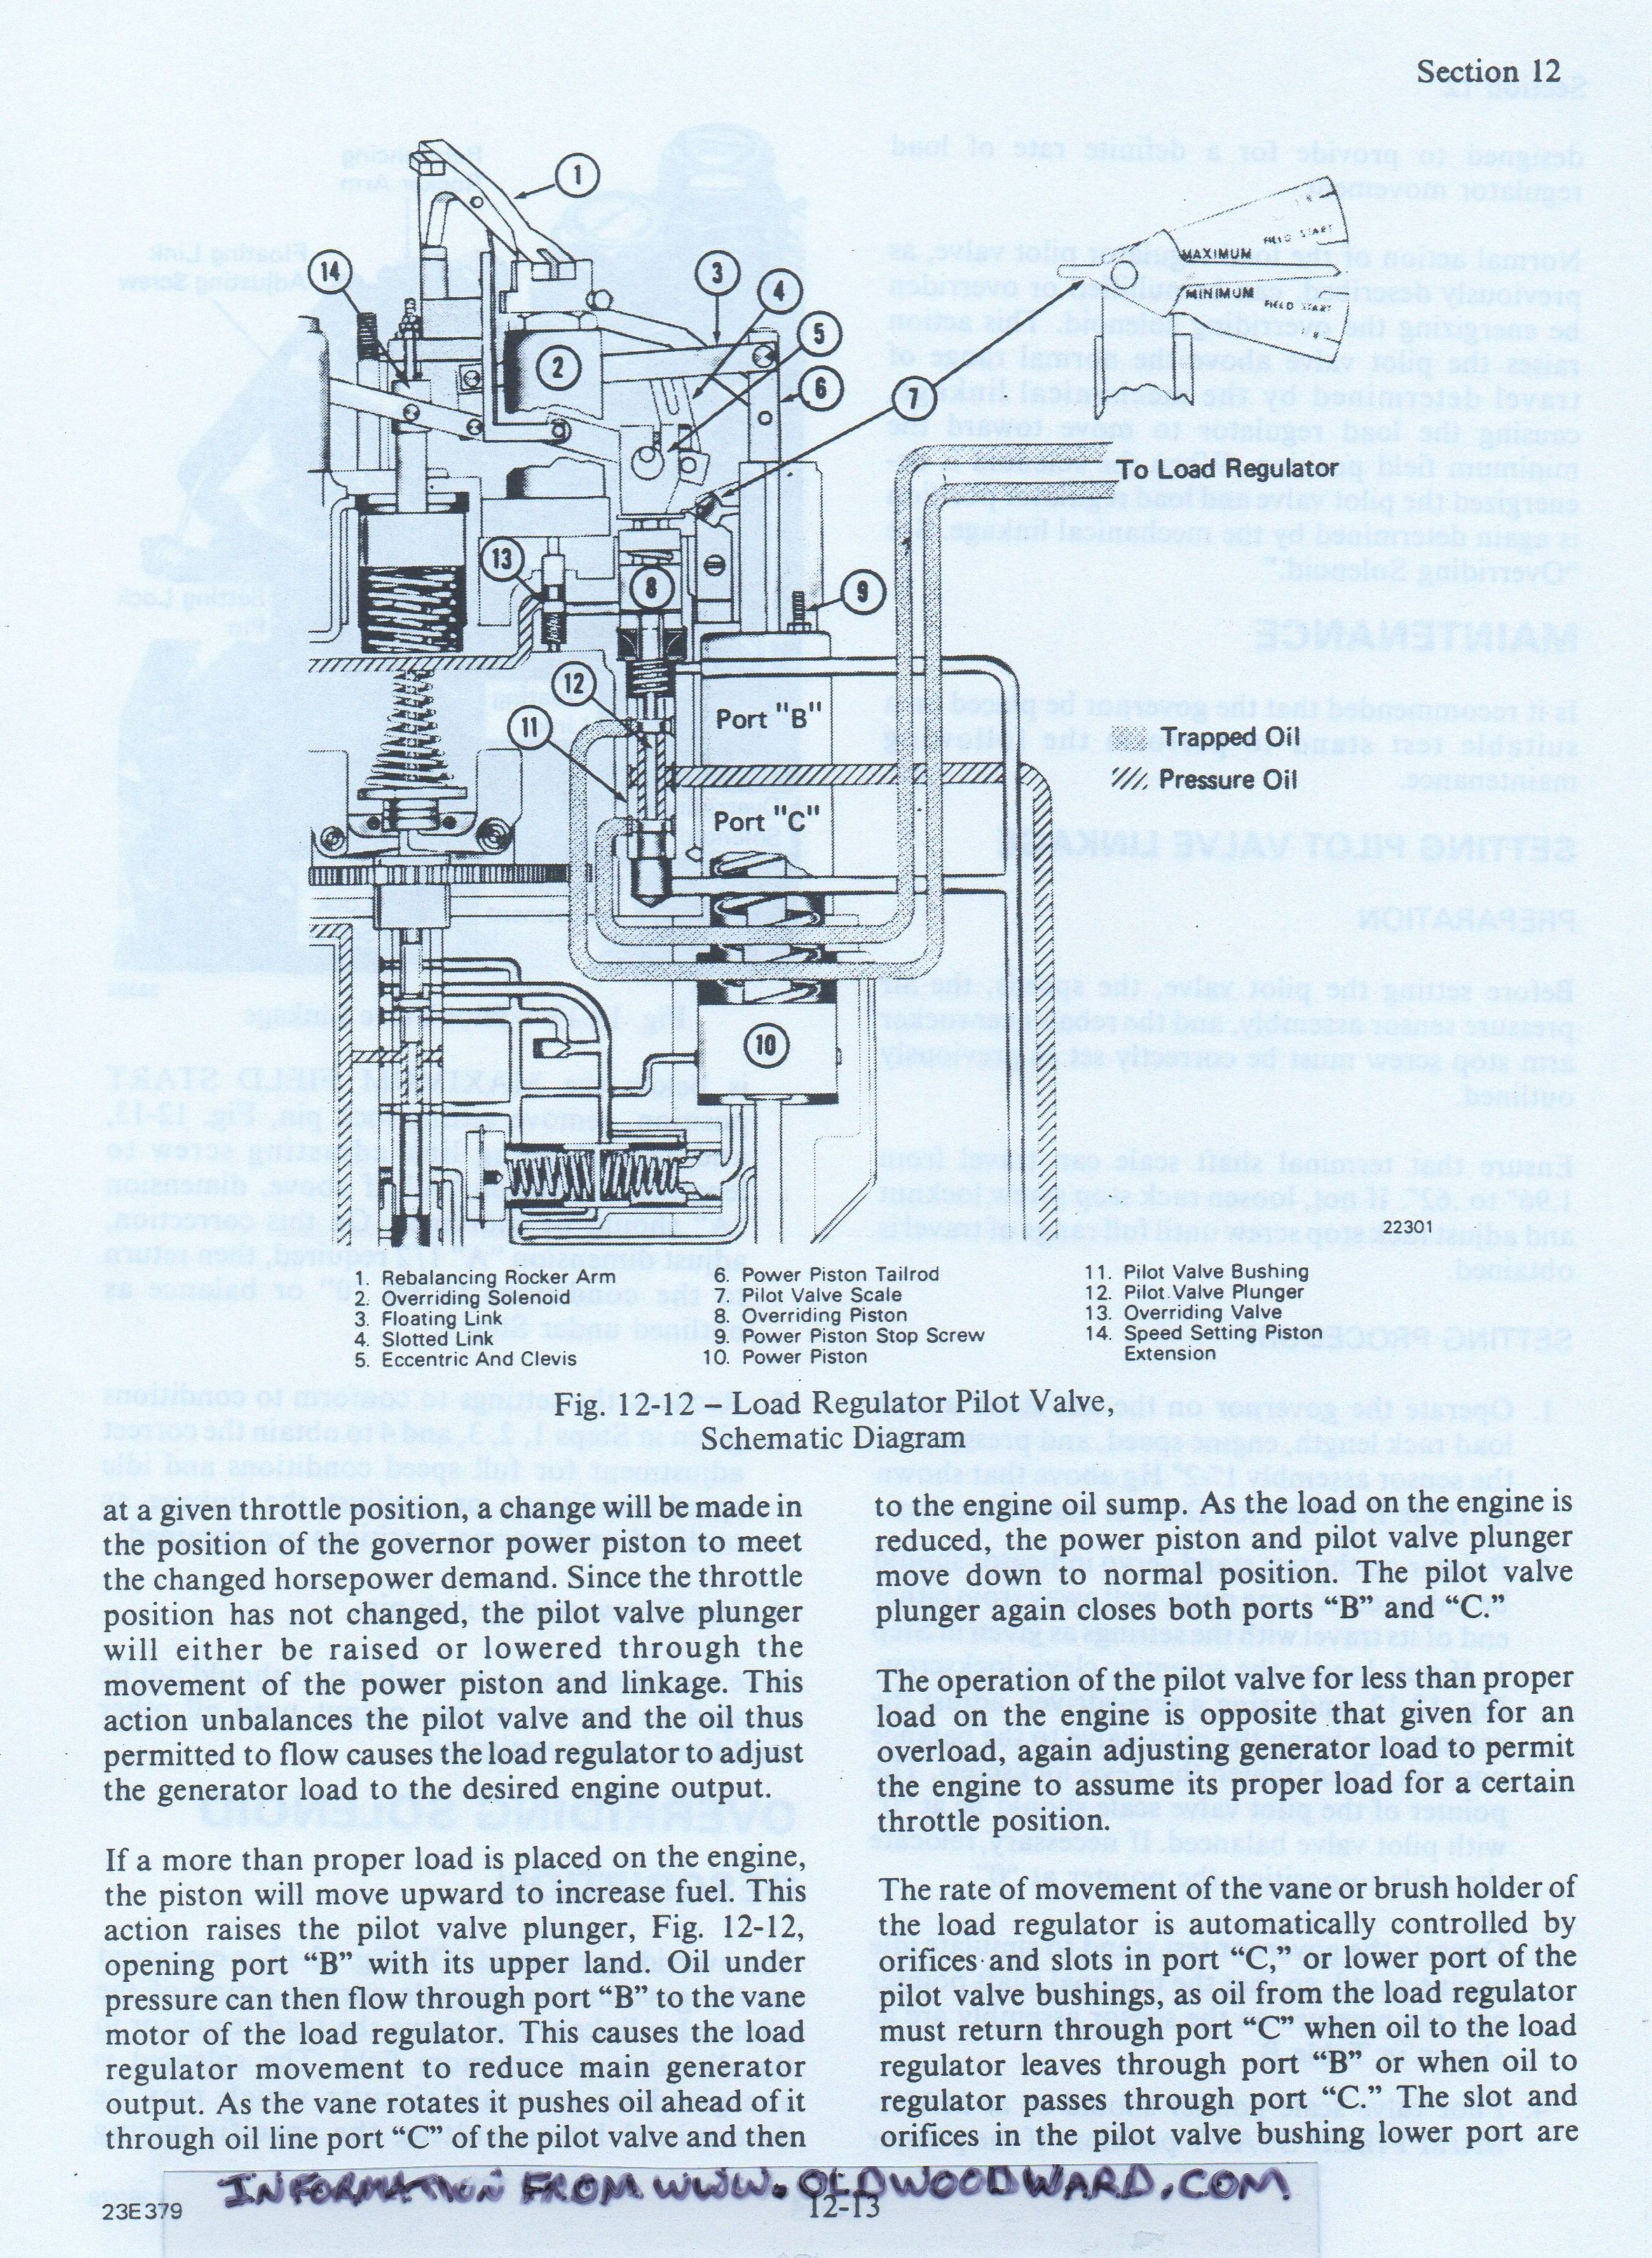 another schematic from an emd diesel engine operating manual showing 4 Post Solenoid Wiring Diagram  Starter Solenoid Wiring Diagram another schematic from an emd diesel engine operating manual showing the woodward pg series governor system